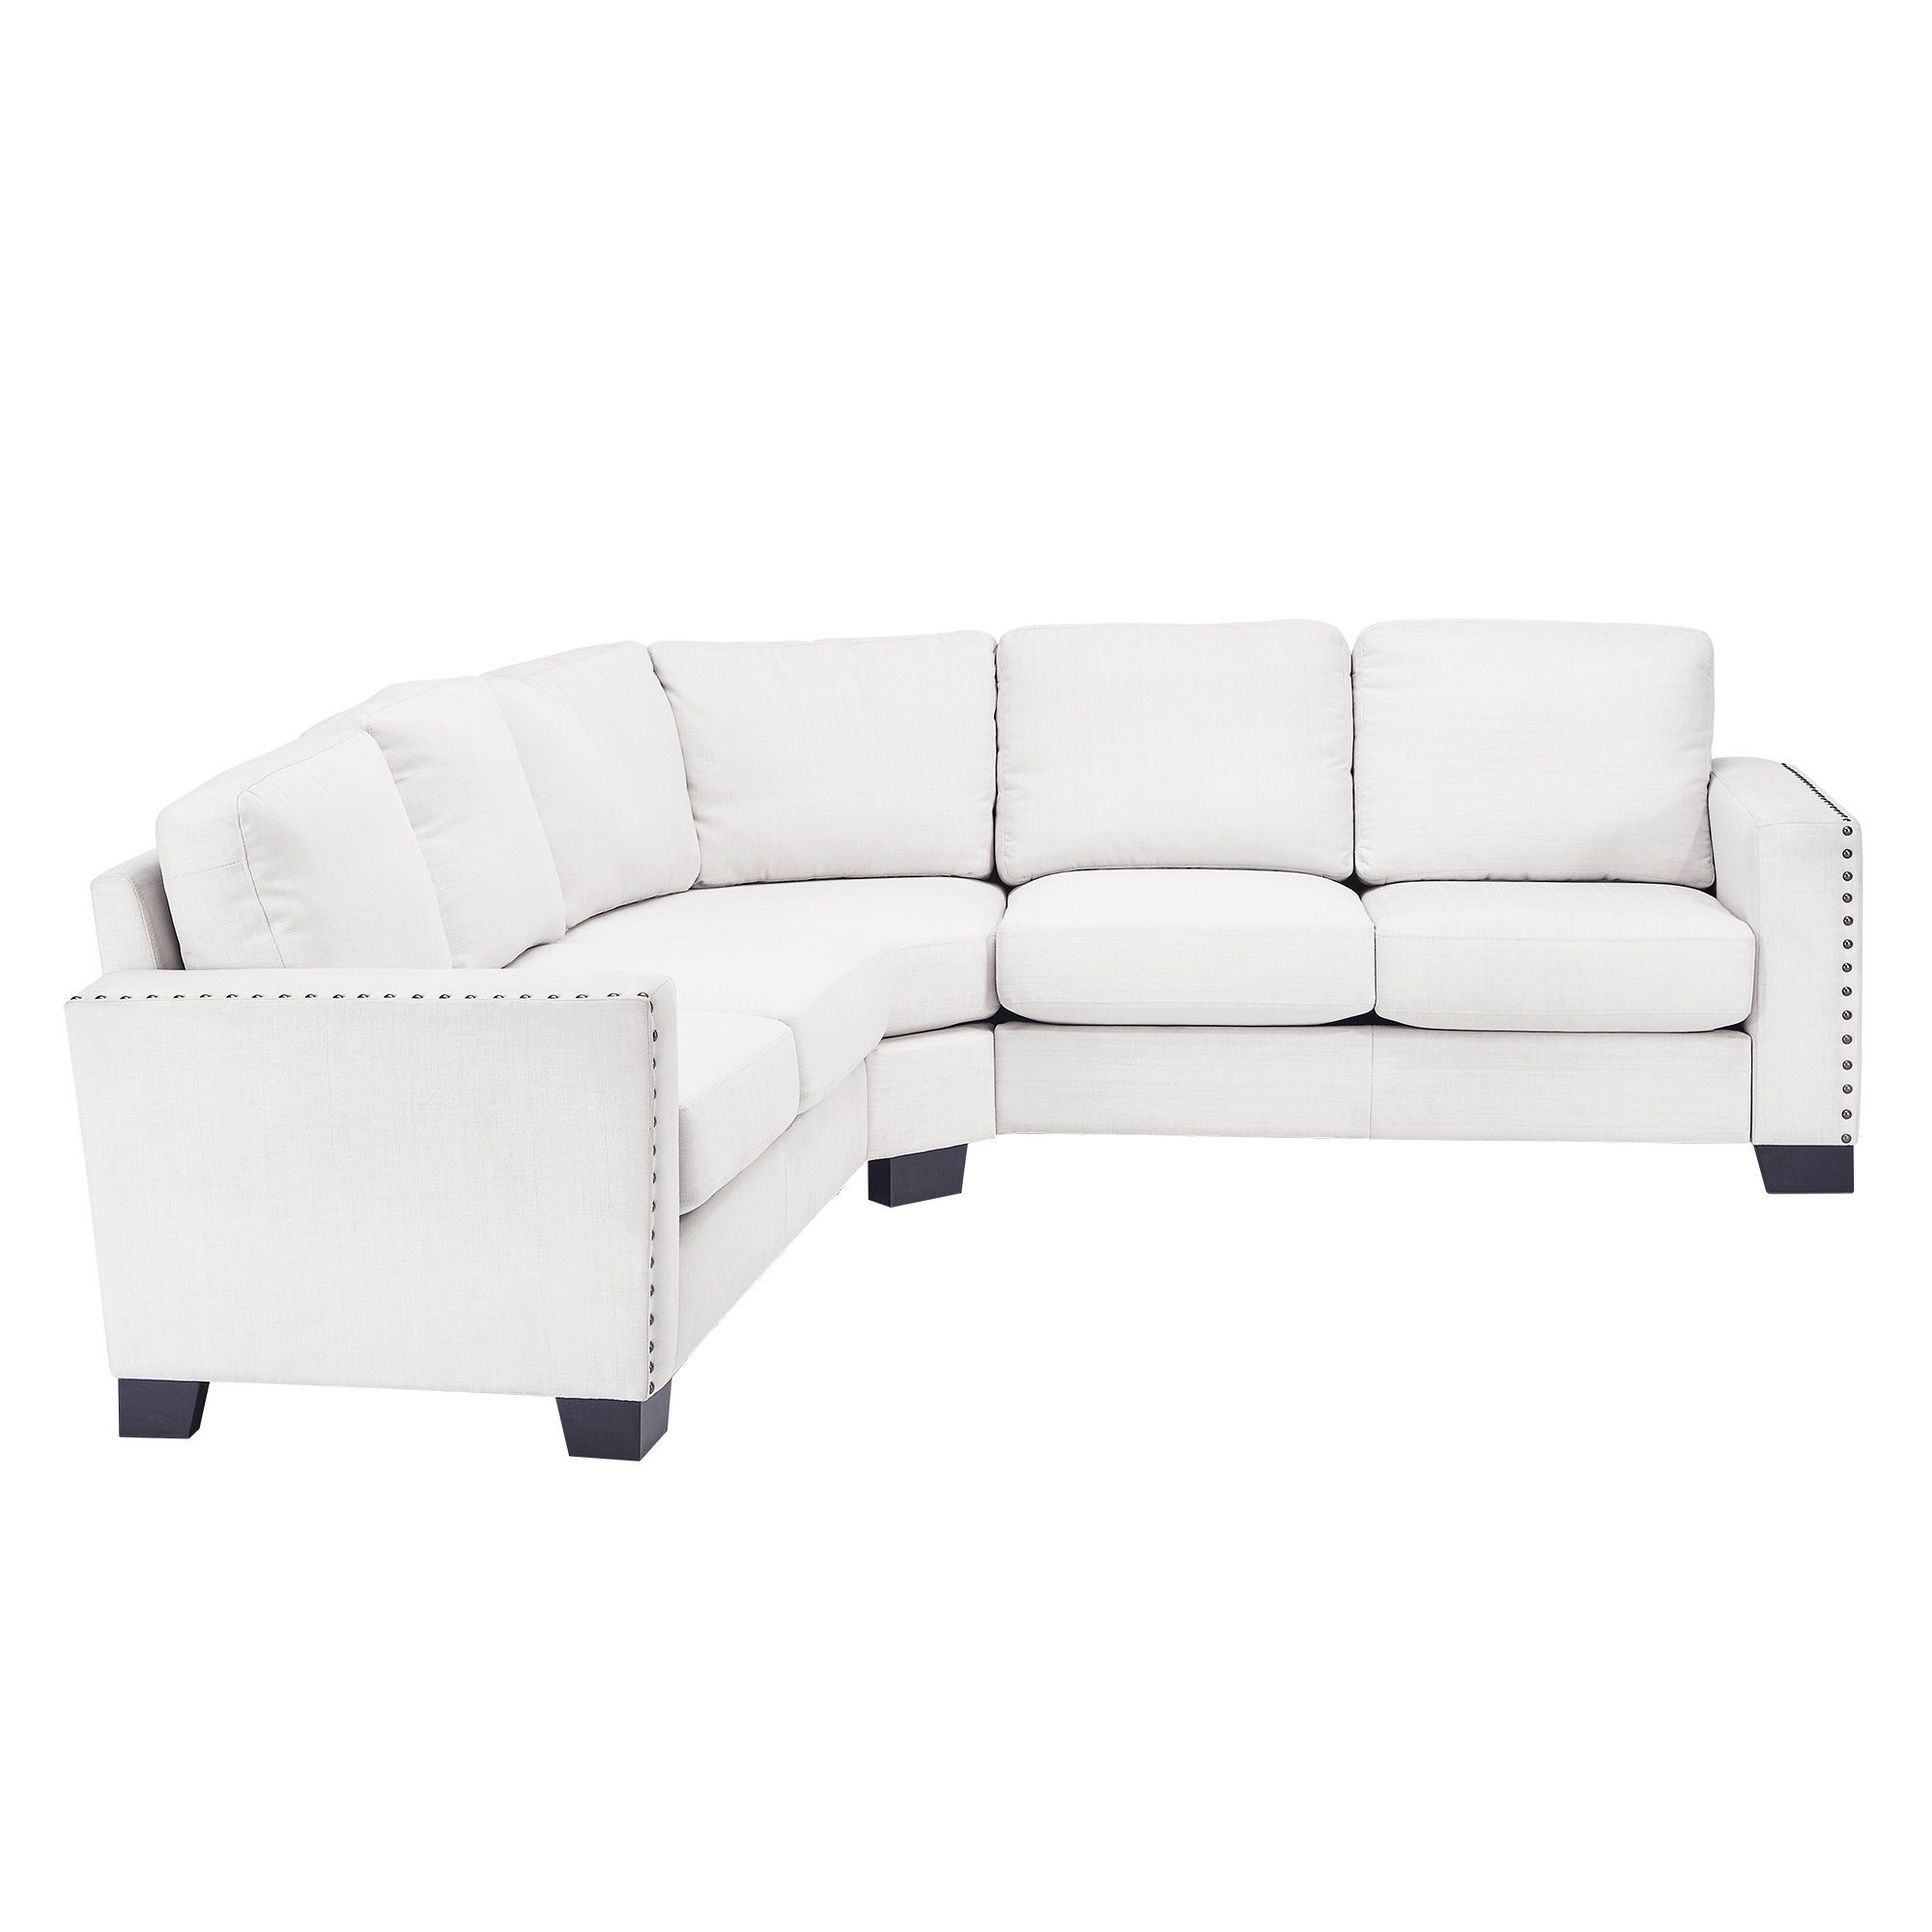 Mercury Row Reg Blackston 5 Seat Nailhead Trimmed Linen L Shaped Reversible Chaise Sectional Inspire Q Sectional Sofa Couch Sectional